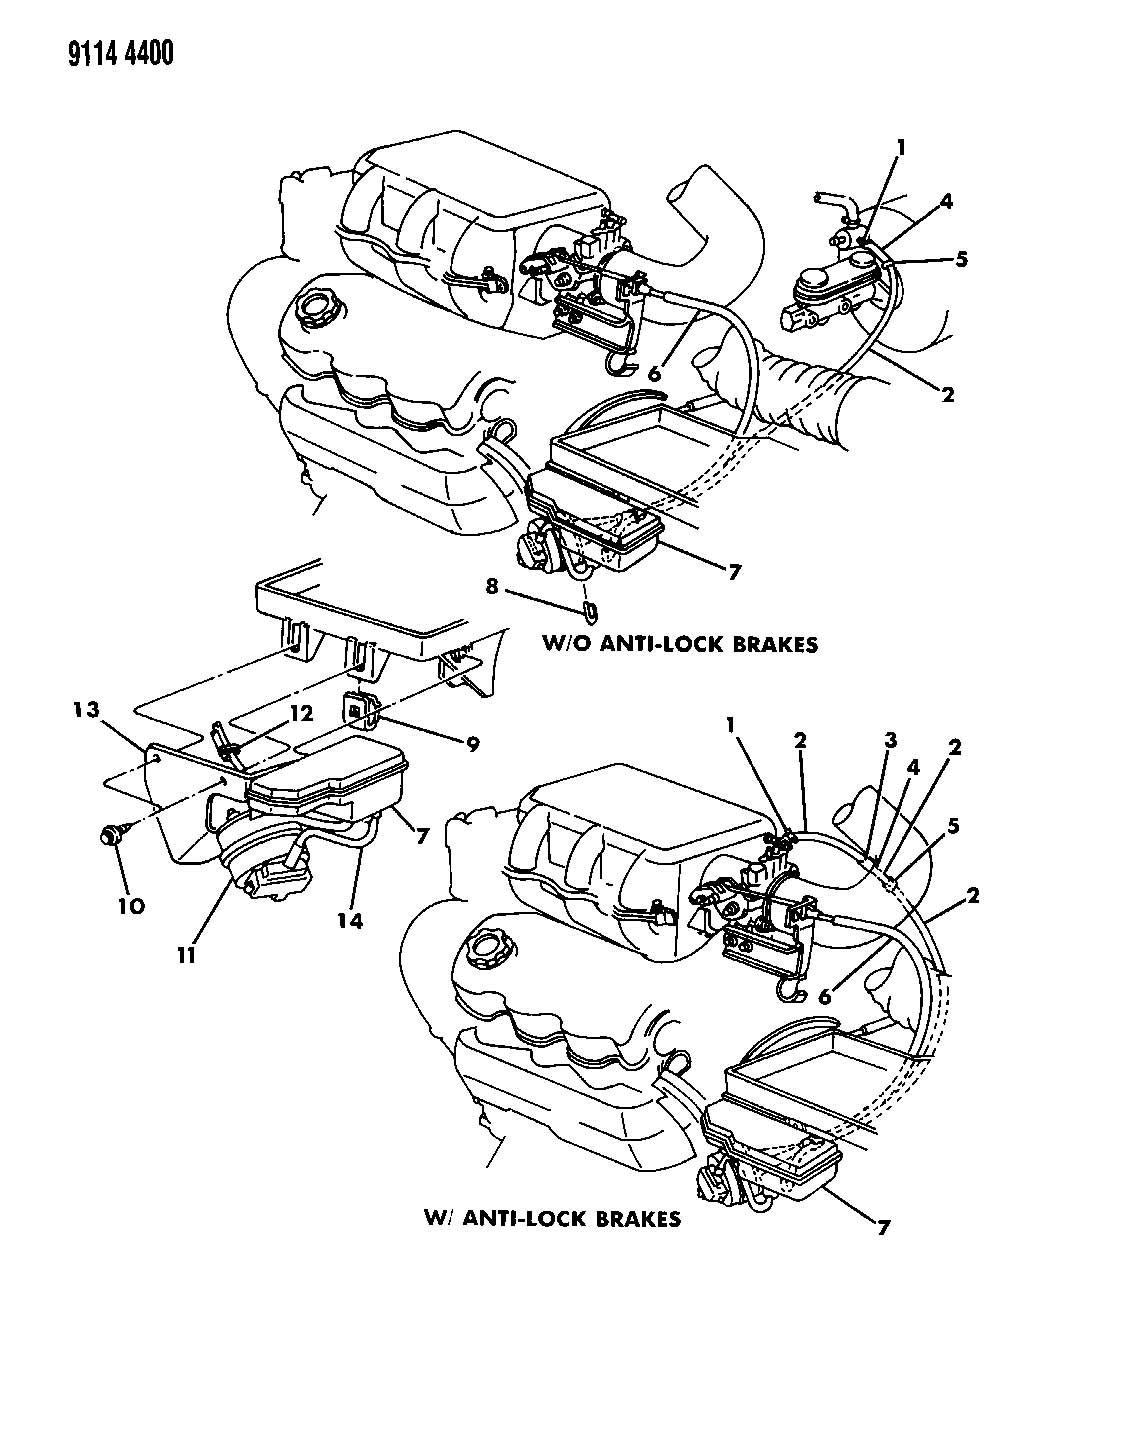 dodge dynasty 3 engine diagram  dodge  auto wiring diagram